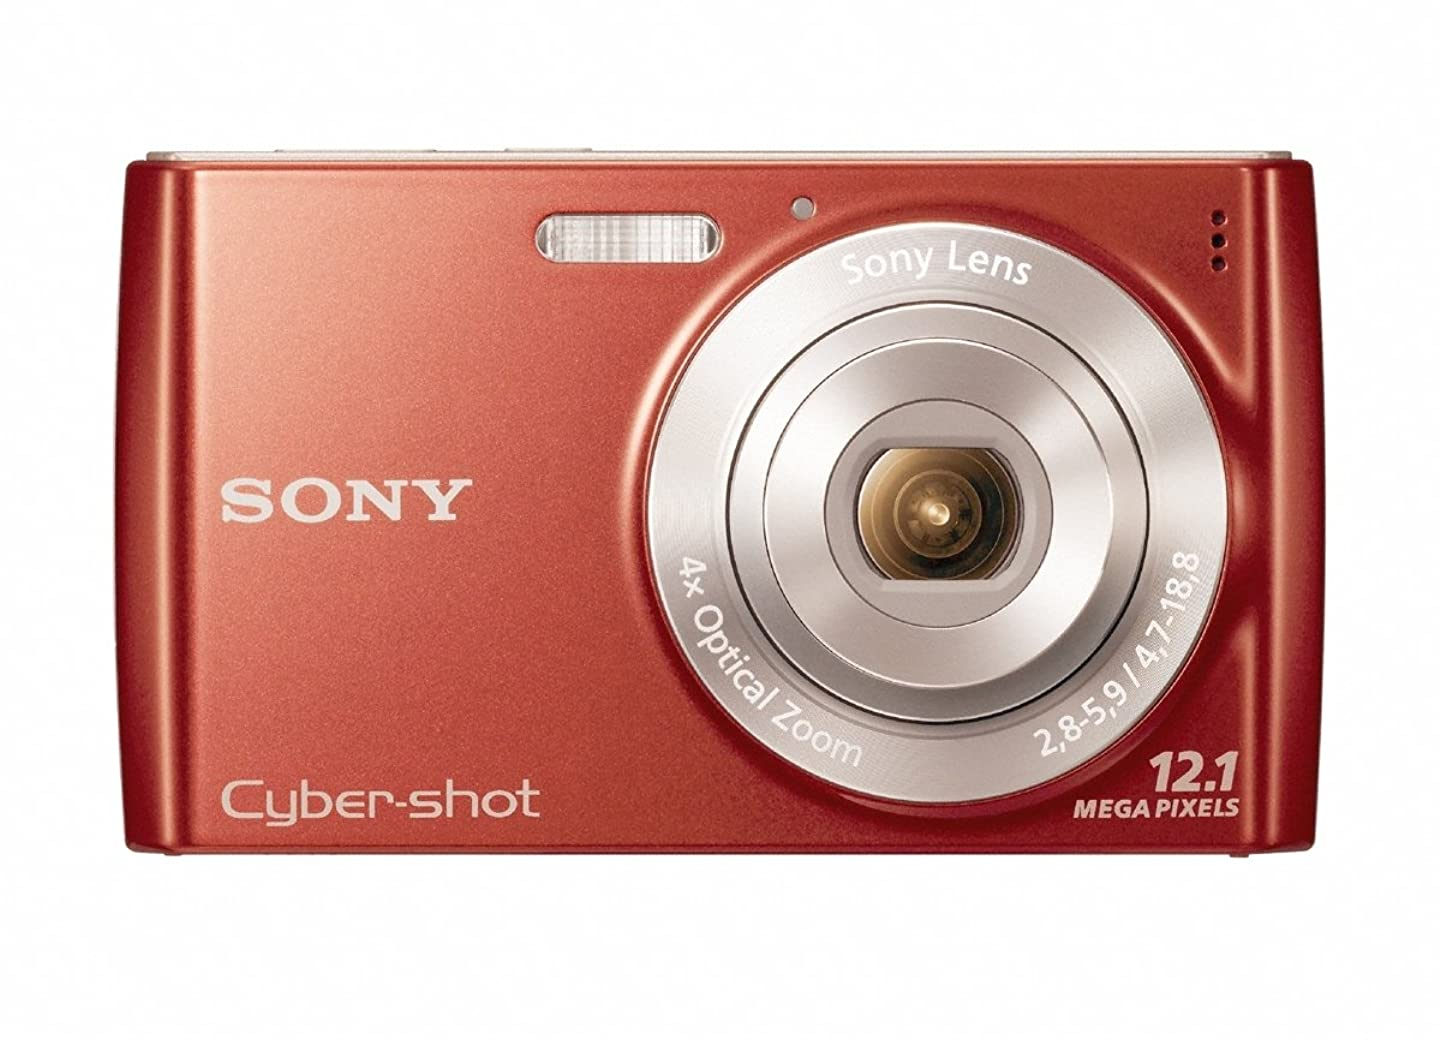 Sony Cyber-Shot DSC-W510 12.1 MP Digital Still Camera with 4x Wide-Angle Optical Zoom Lens and 2.7-inch LCD (Red)